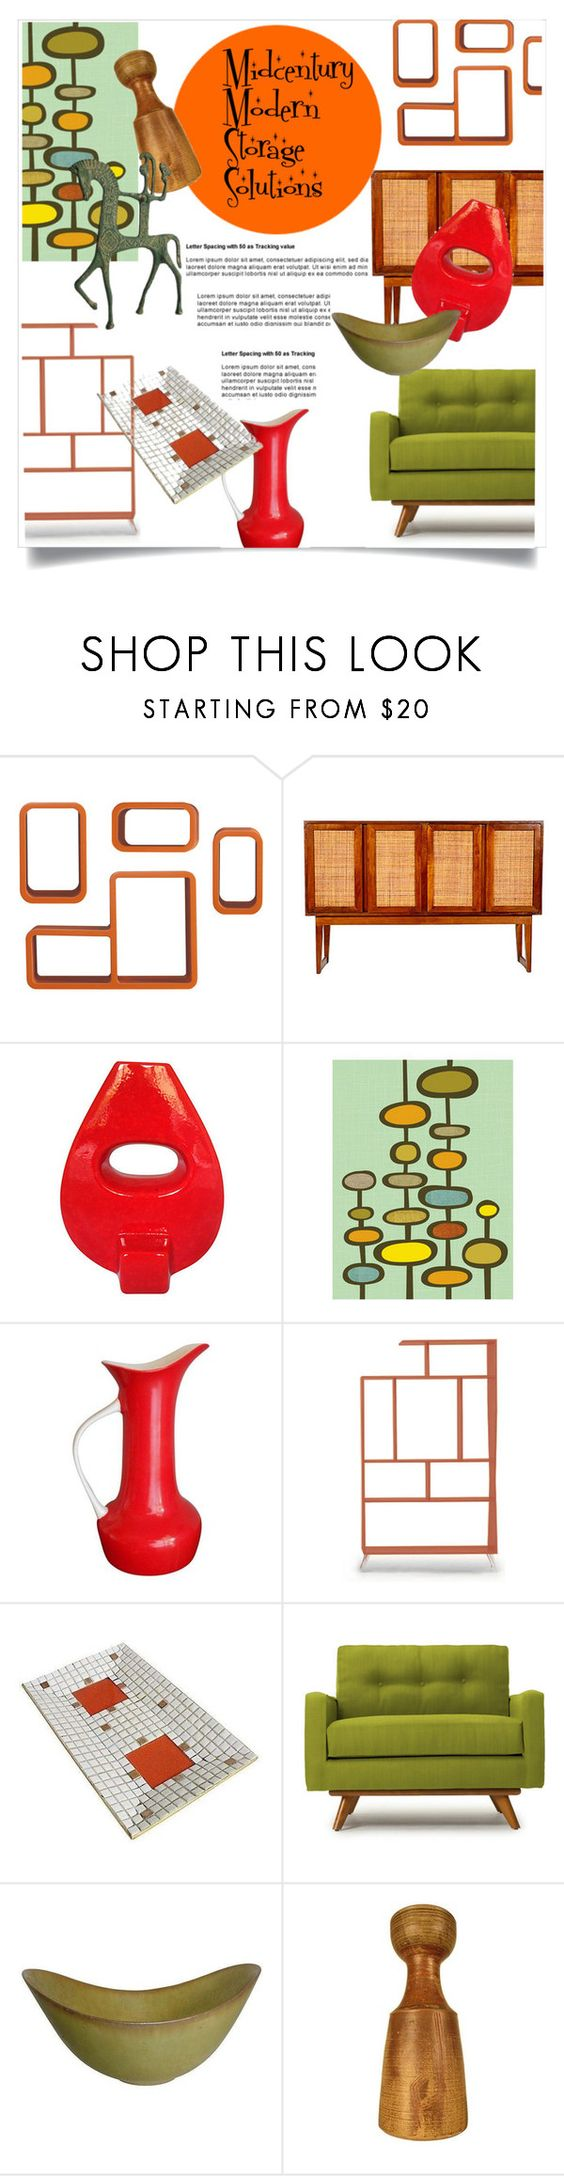 """""""Midcentury Modern Storage Solutions"""" by metter1 ❤ liked on Polyvore featuring interior, interiors, interior design, home, home decor, interior decorating, Dot & Bo, Joybird Furniture, Thrive and modern"""